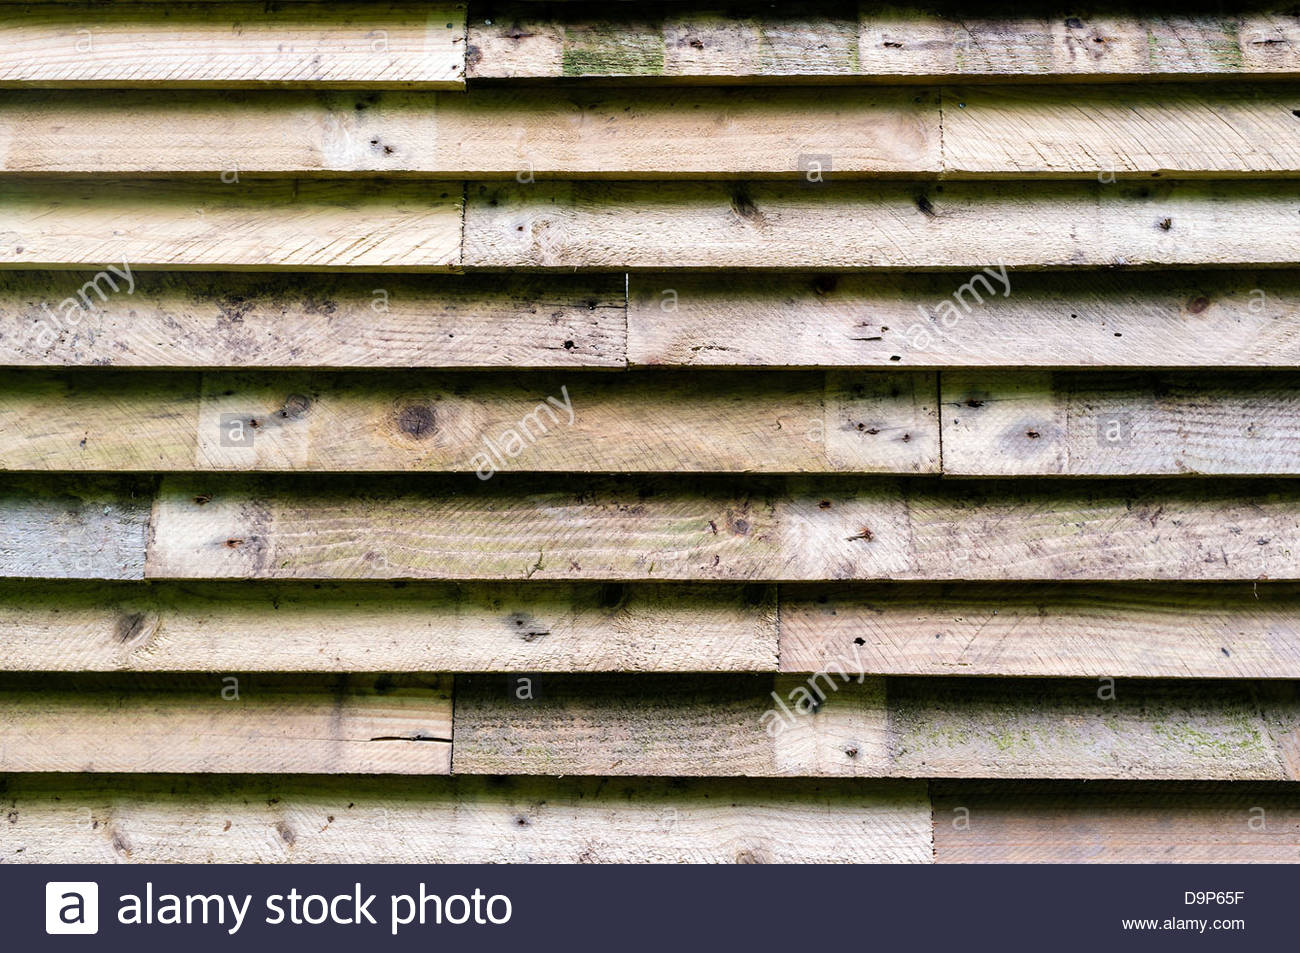 Detail of Clapboard Siding - Stock Image